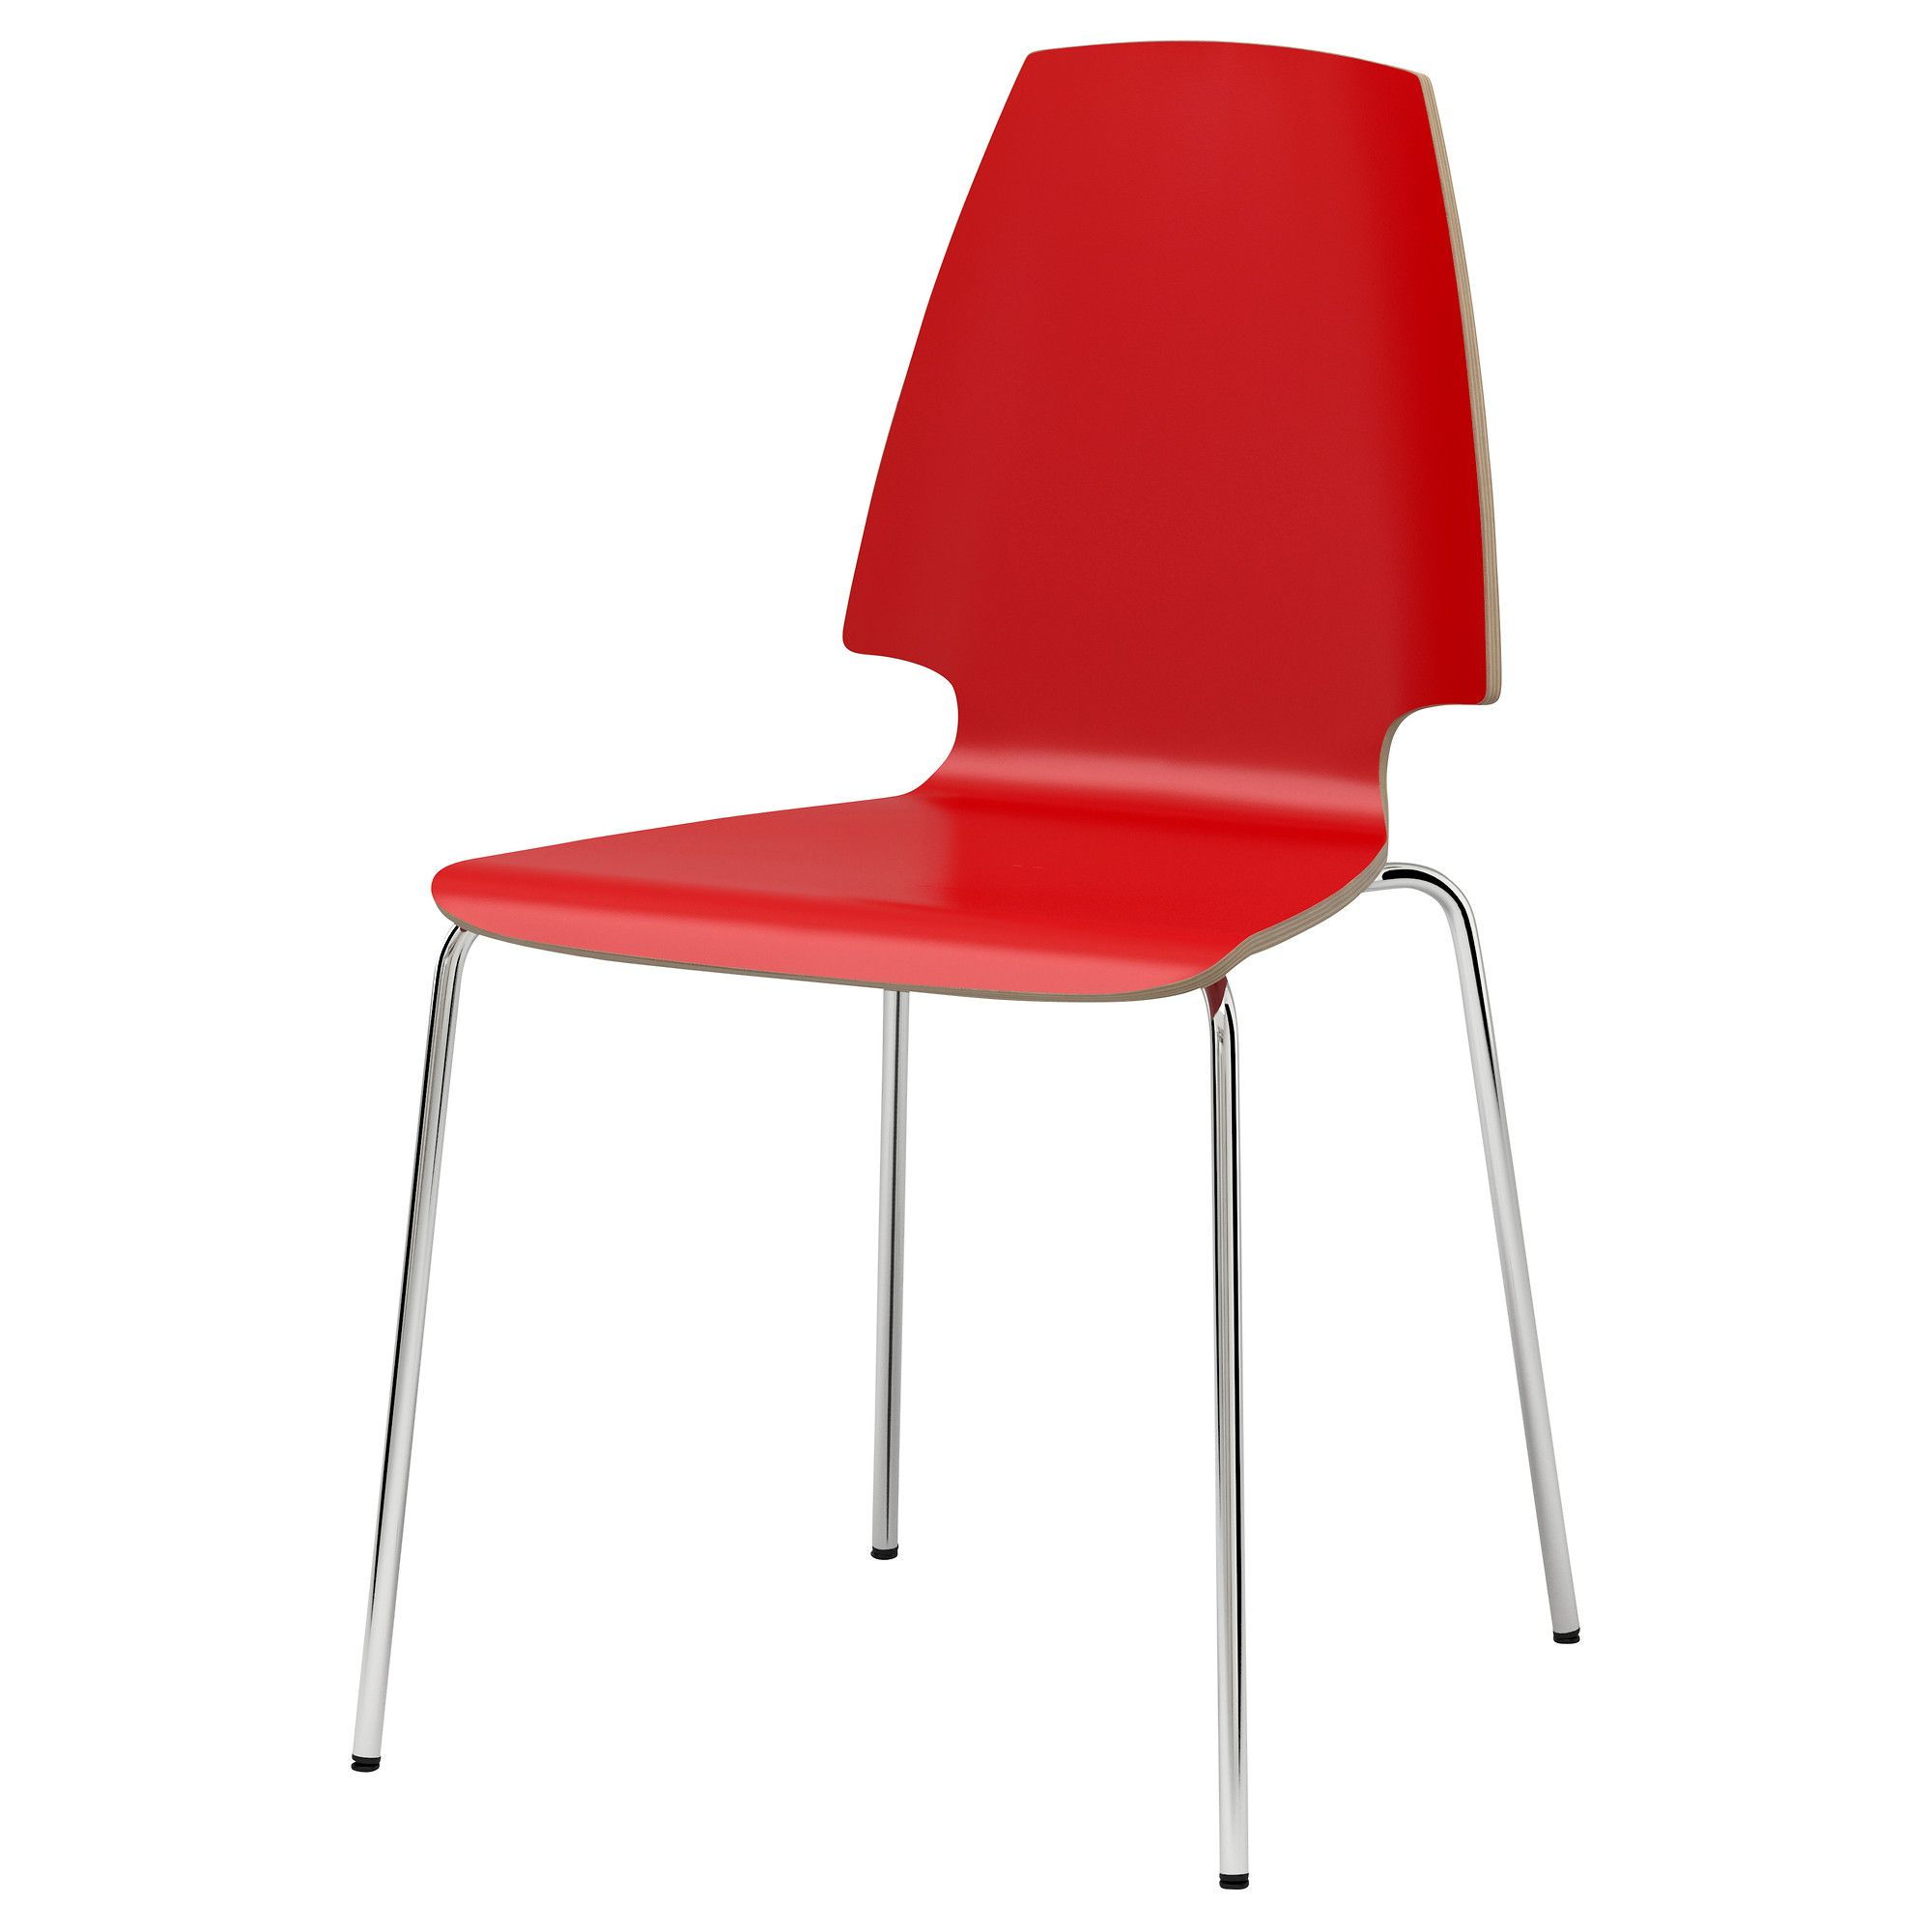 butterfly chair ikea swivel kmart vilmar red chrome plated only 39 i think